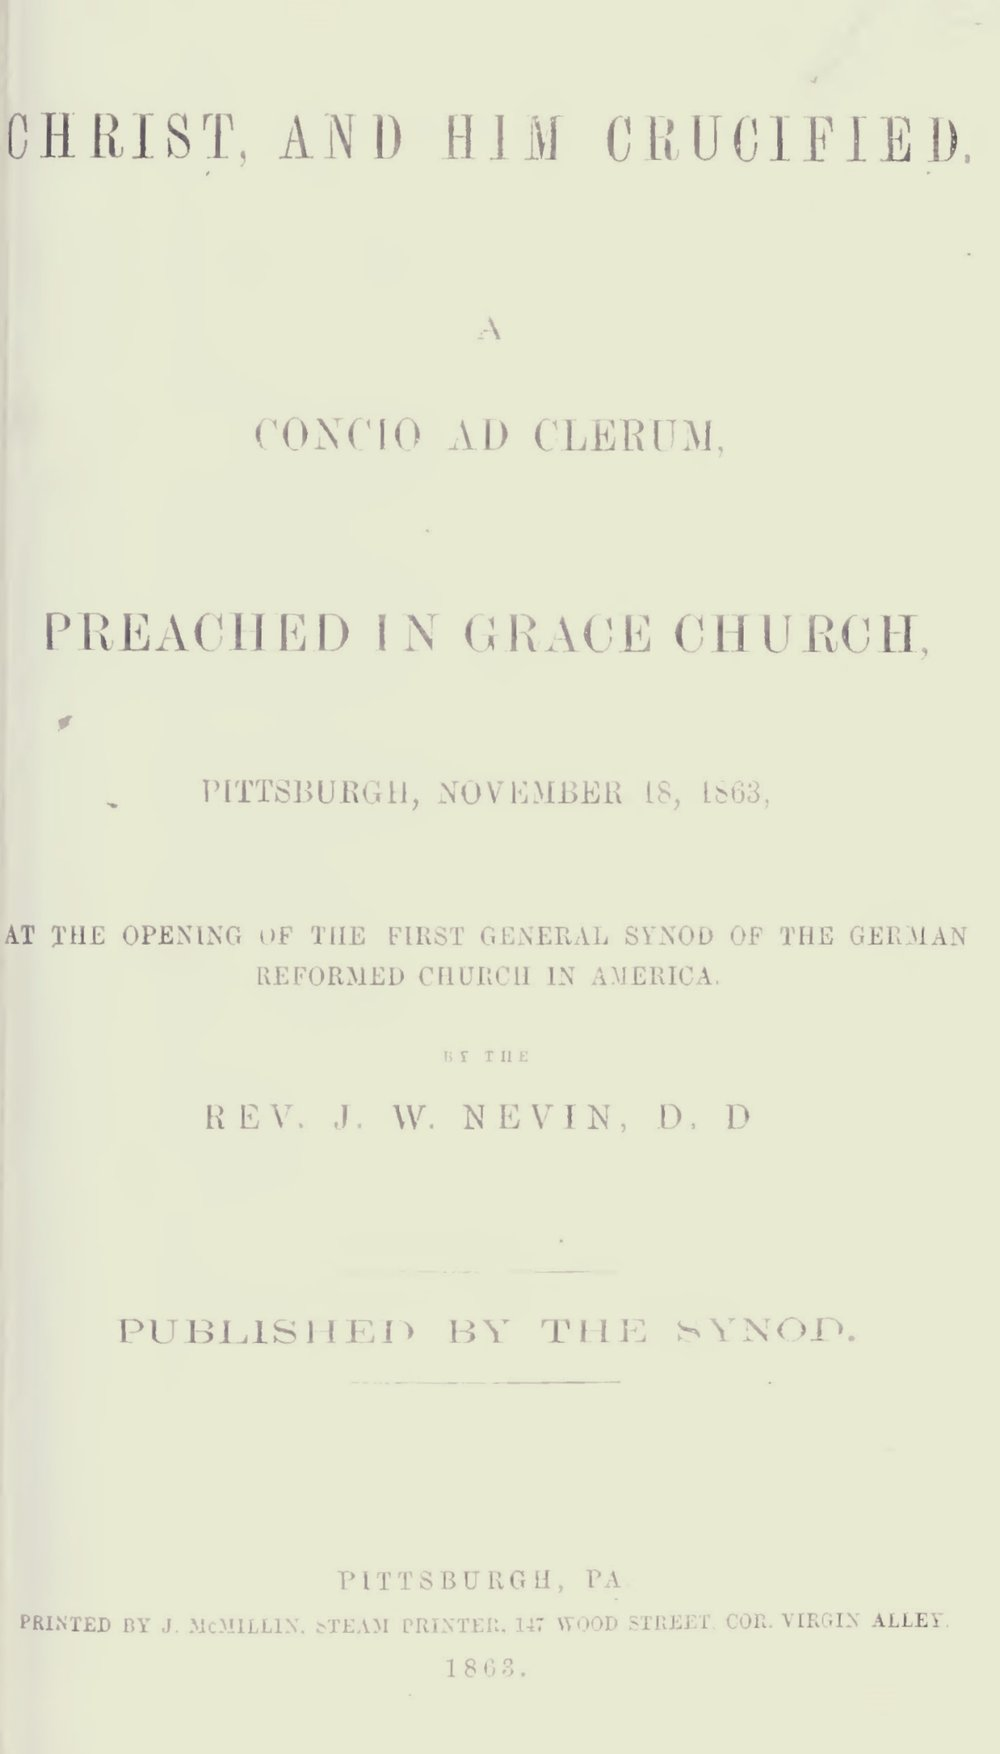 Nevin, John Williamson, Christ, and Him Crucified Title Page.jpg